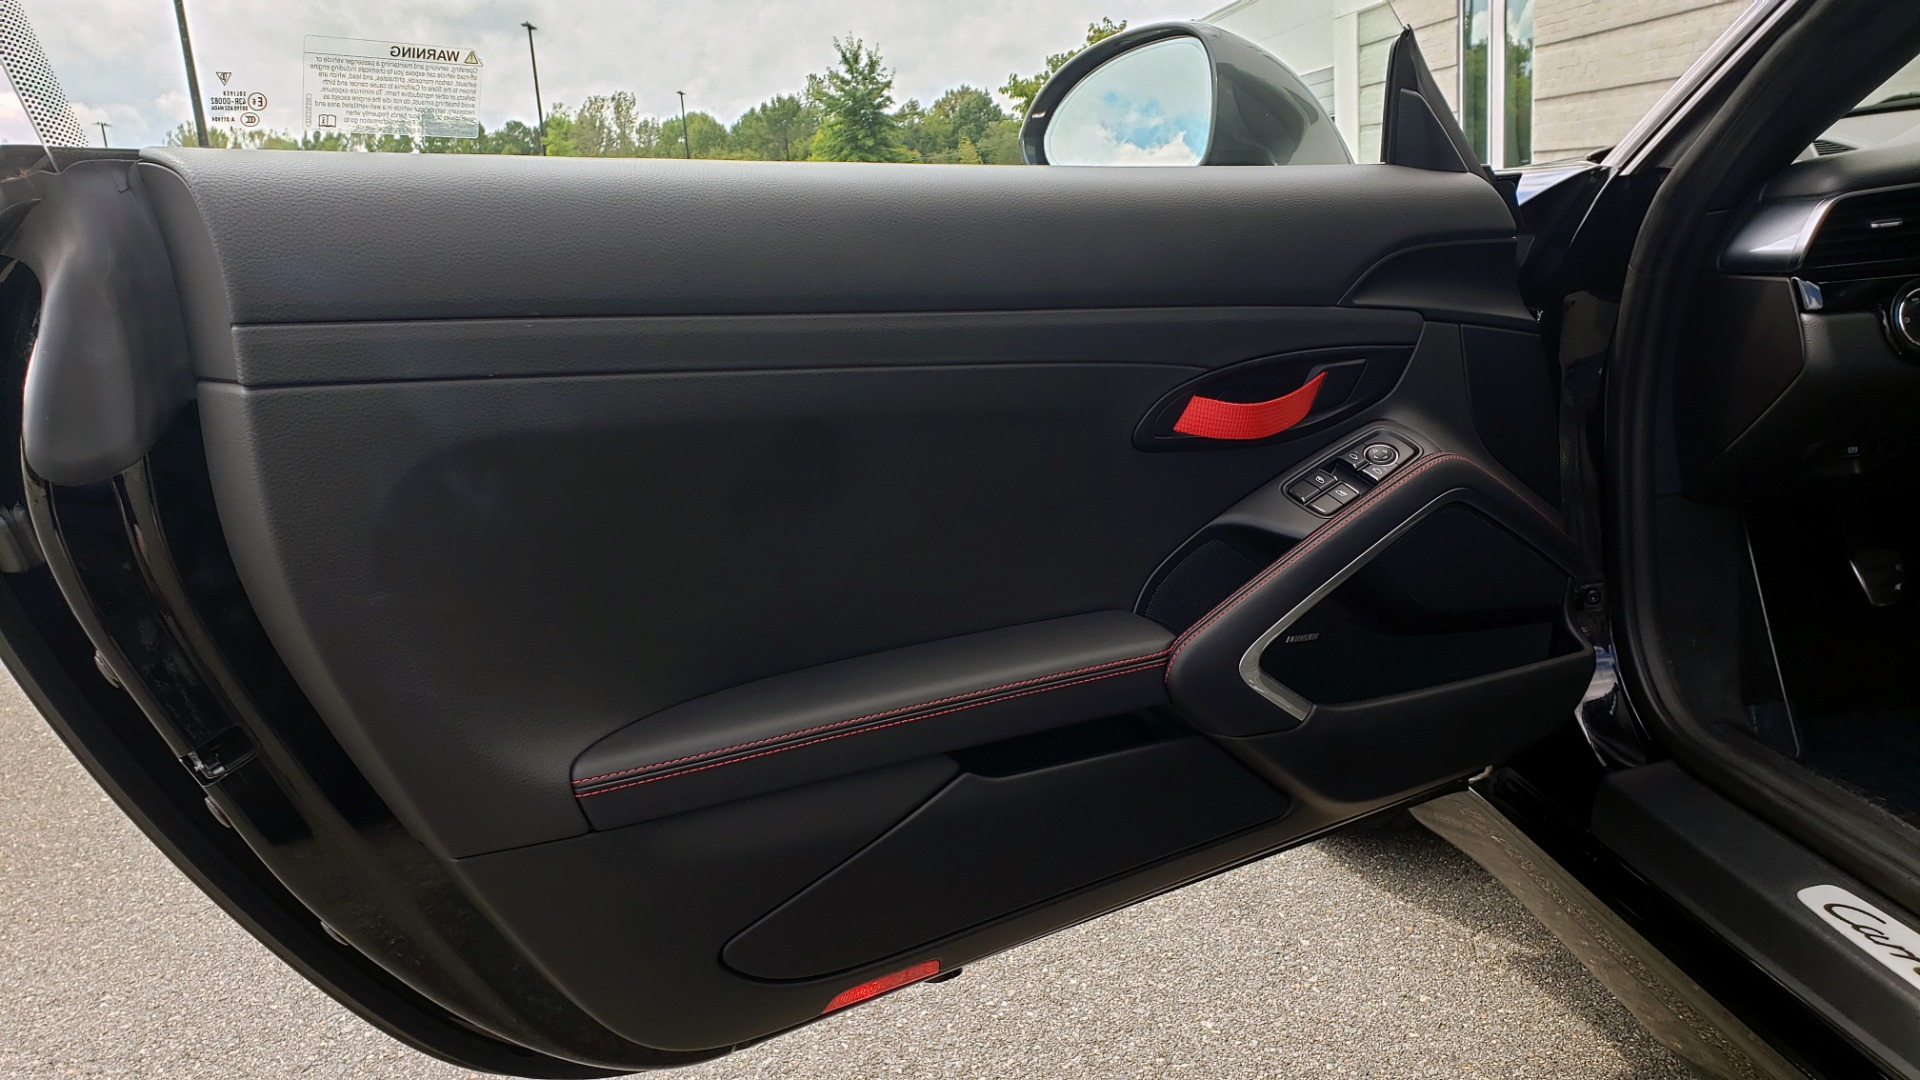 Used 2019 Porsche 911 CARRERA T / 3.0L H6 / MANUAL / PREMIUM / NAV / BOSE / SUNROOF / REARVIEW for sale $117,000 at Formula Imports in Charlotte NC 28227 16